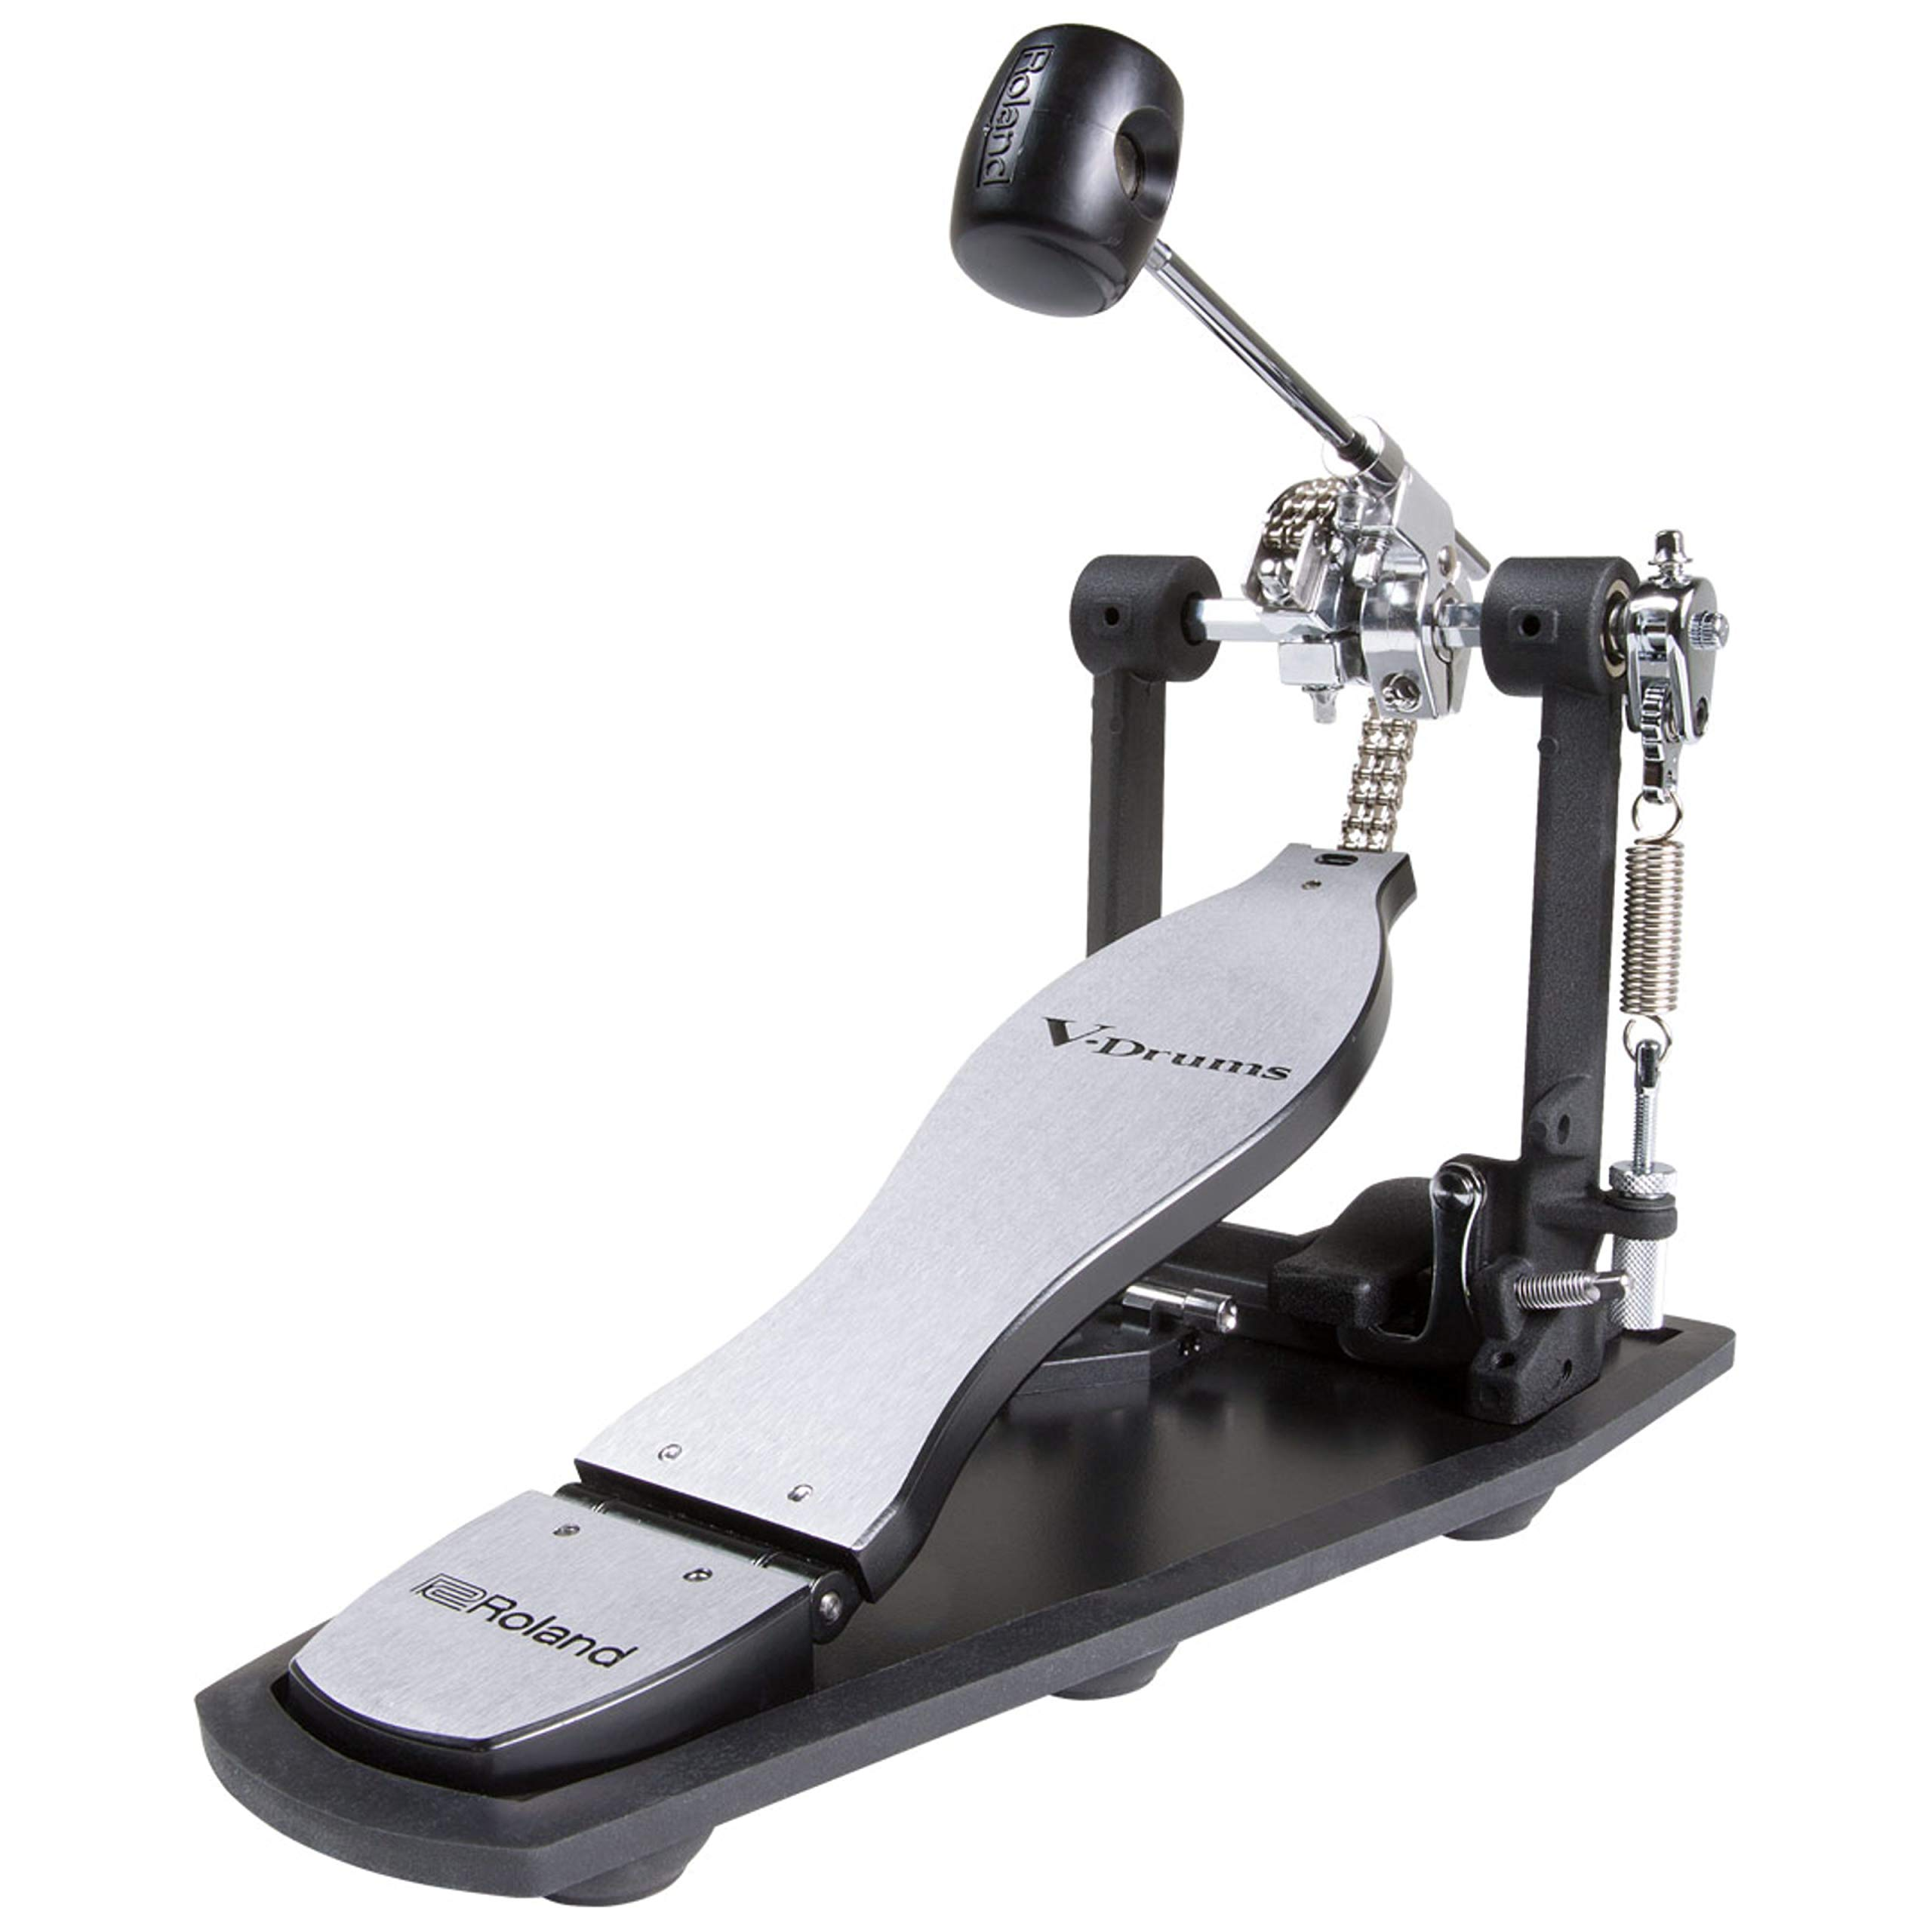 Roland Heavy-Duty Kick Pedal with Noise Eater Technology - RDH-100